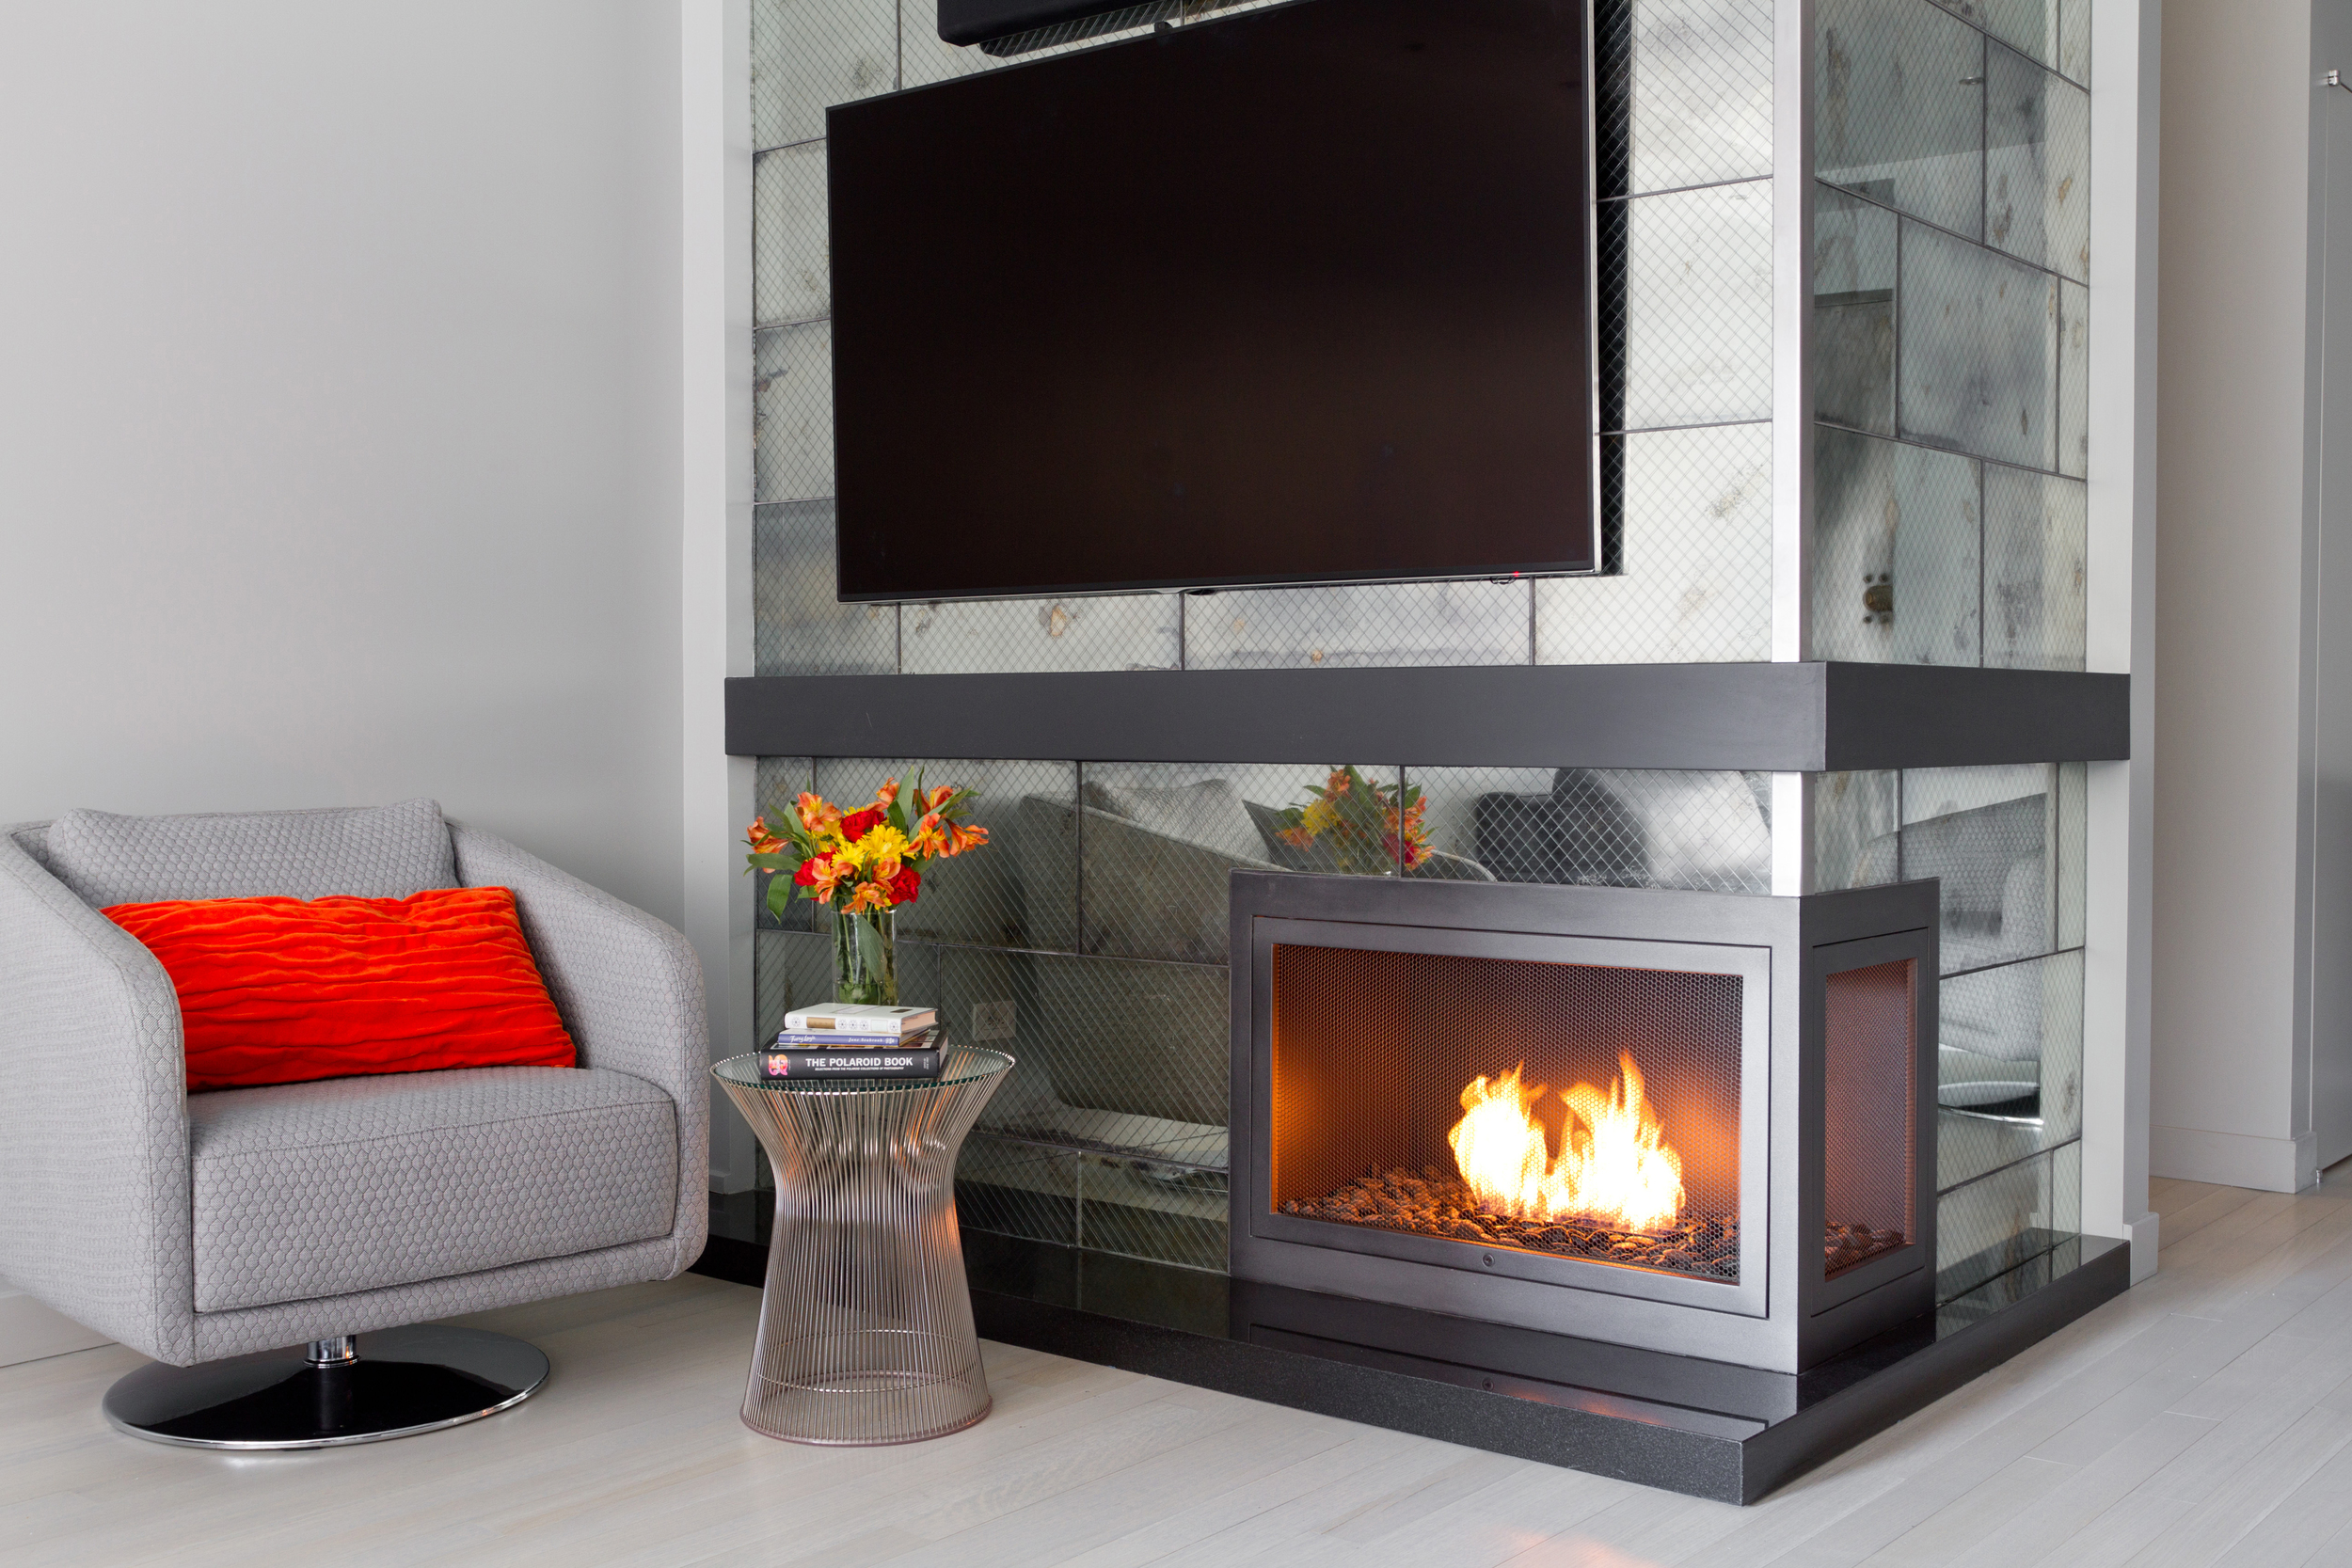 Custom Ventless Fireplaces  Personal Fireplaces designed by HearthCabinet